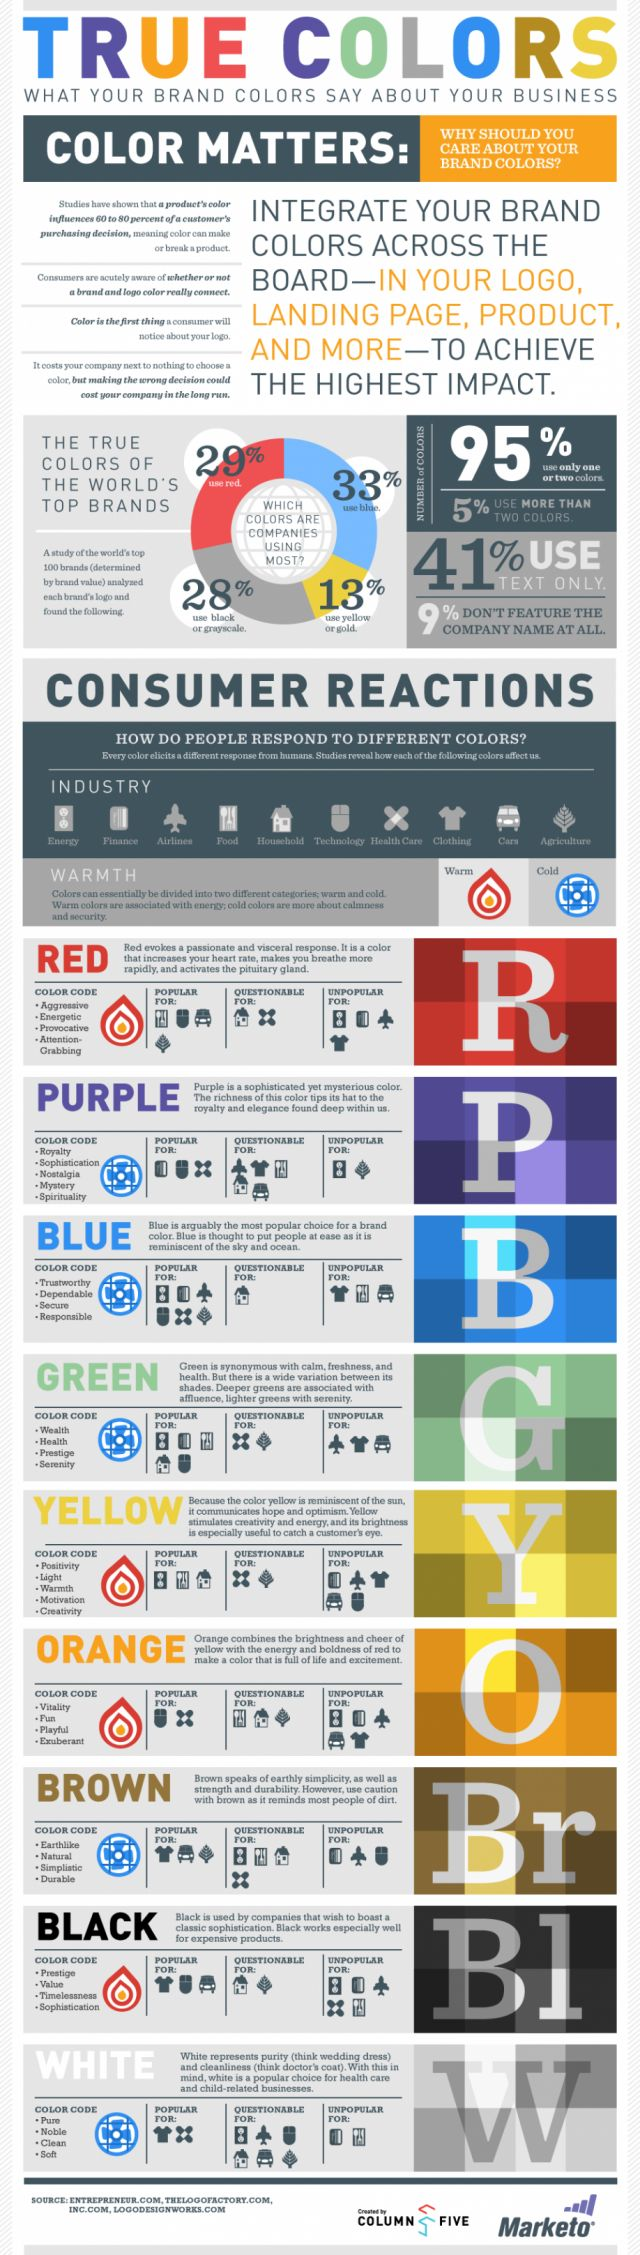 True Colors: What Your Brand Colors Say About Your Business - #infographic #branding #color